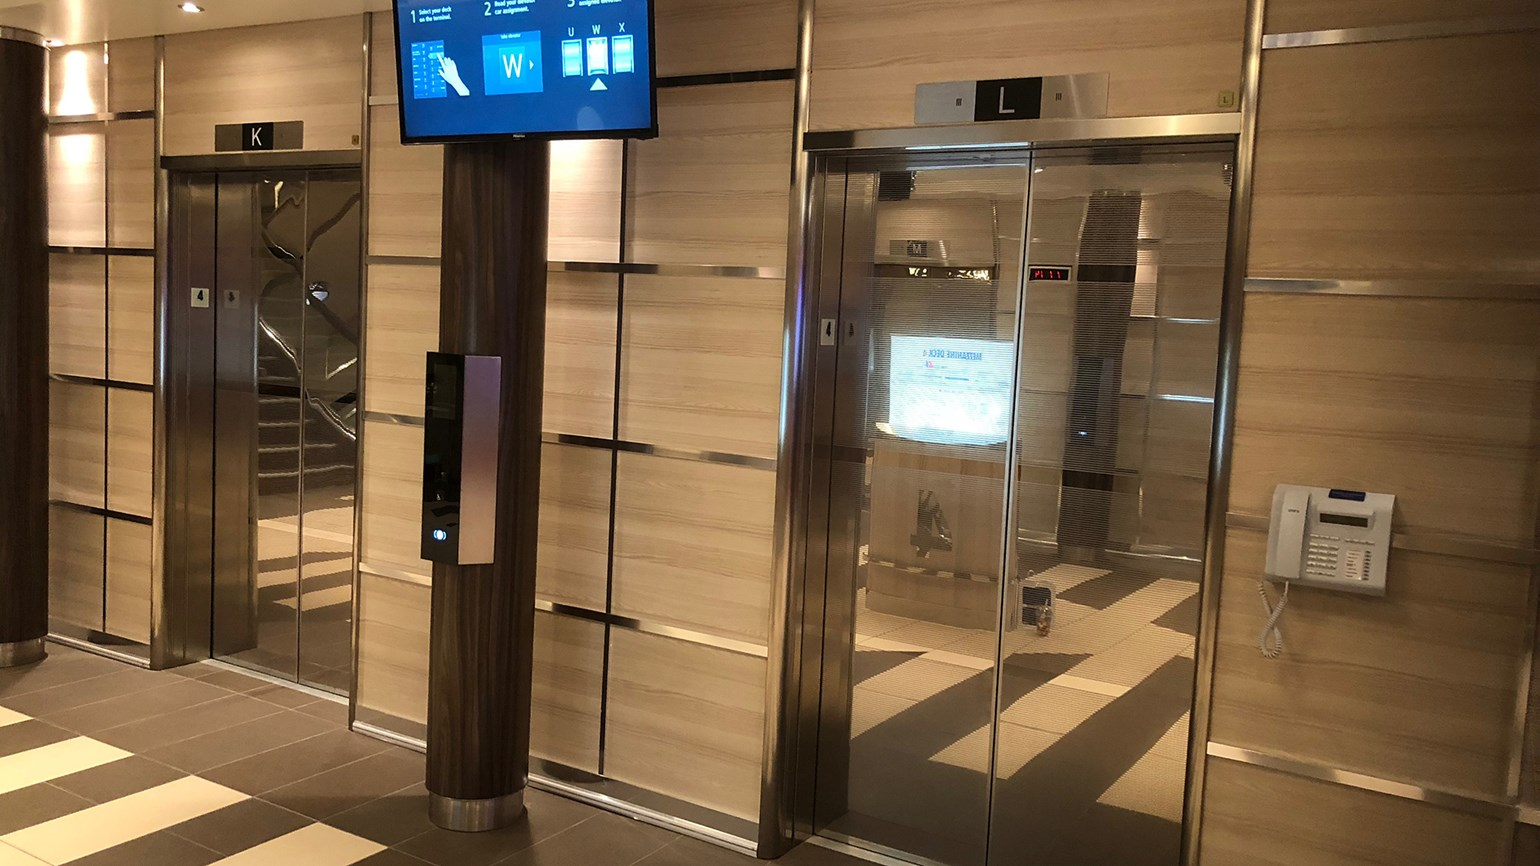 Carnival Horizon equipped with smart elevators